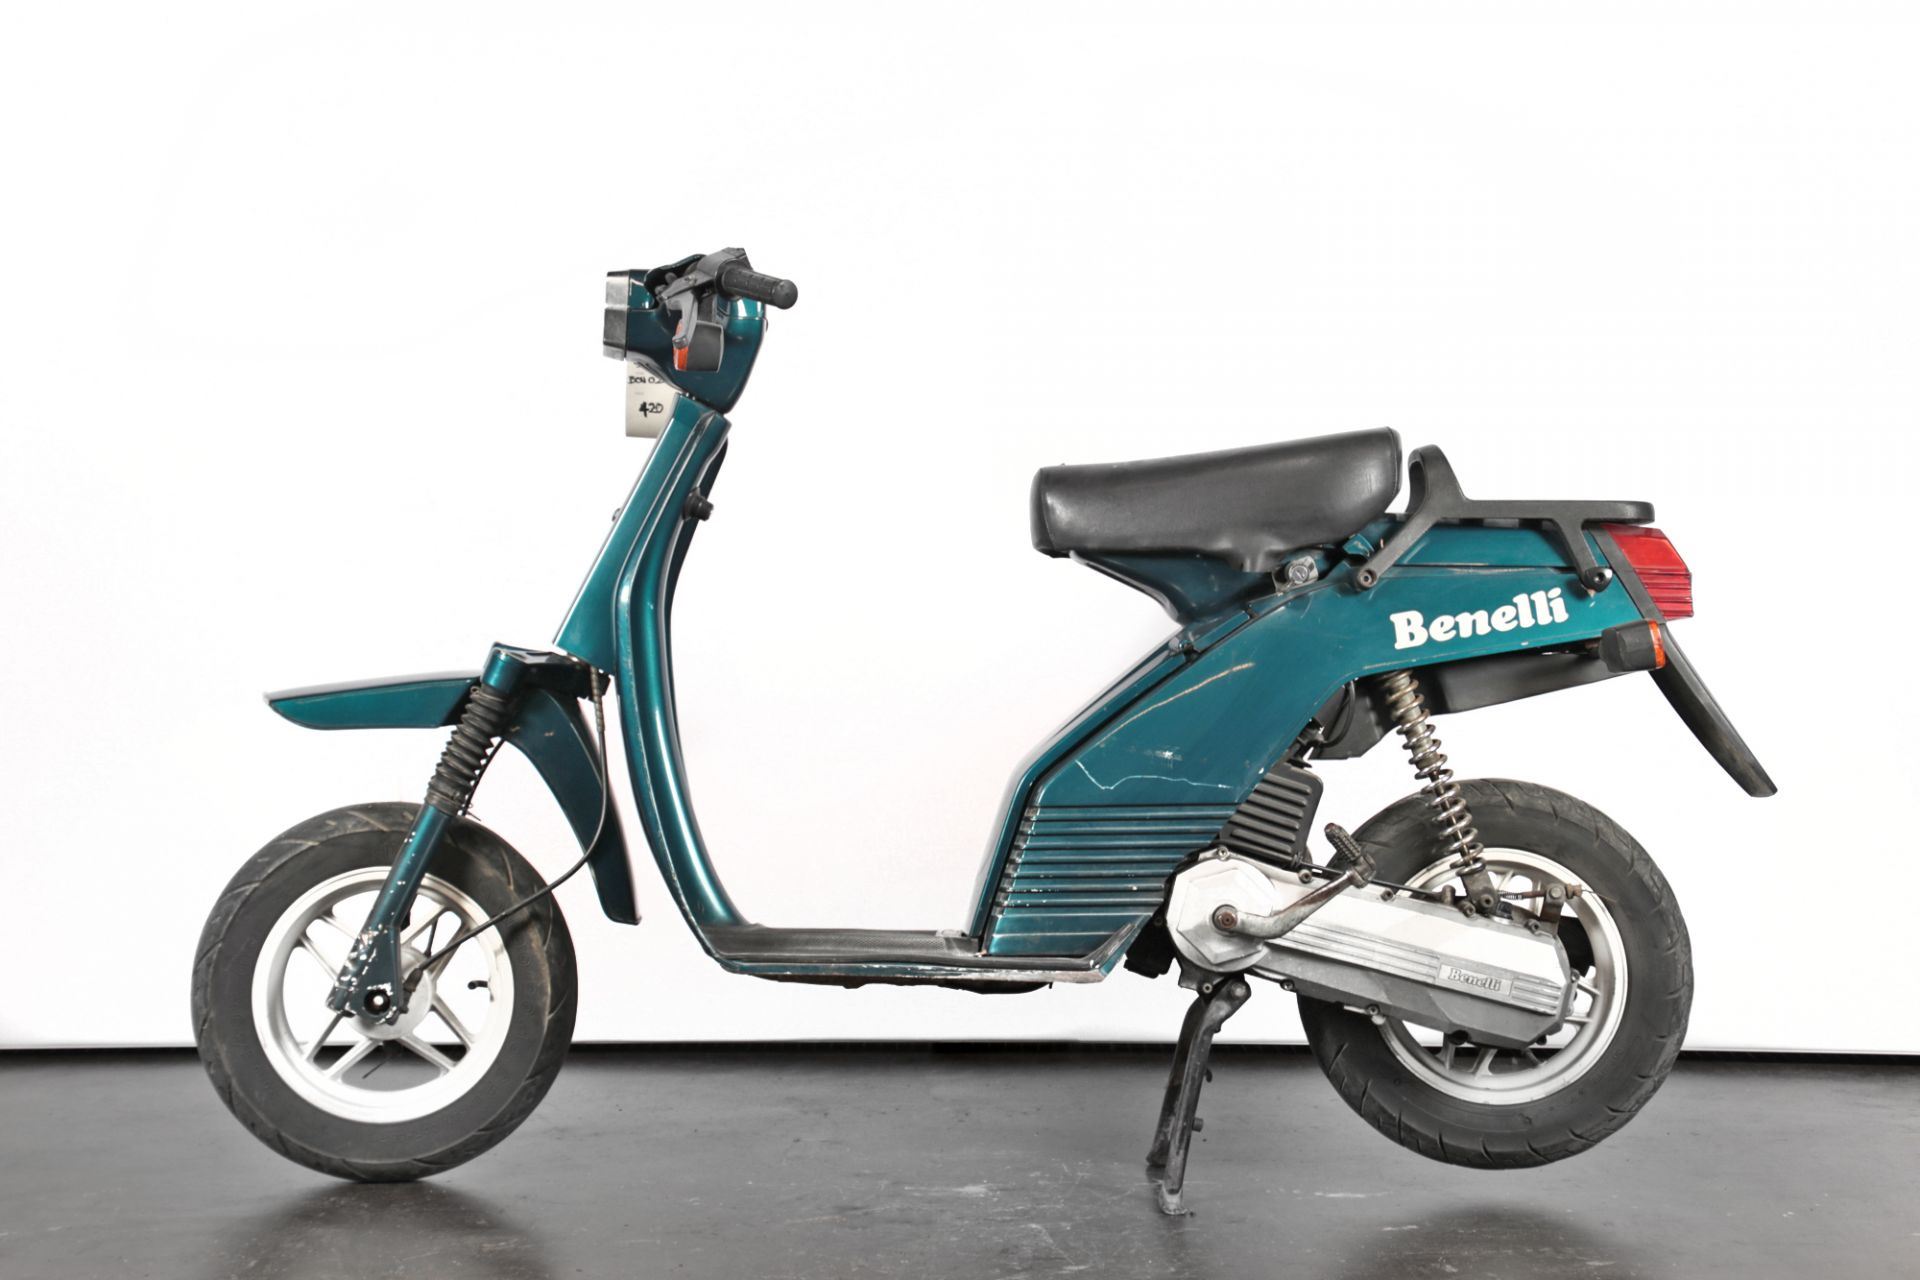 1992 Benelli SCOOTER S50 42917